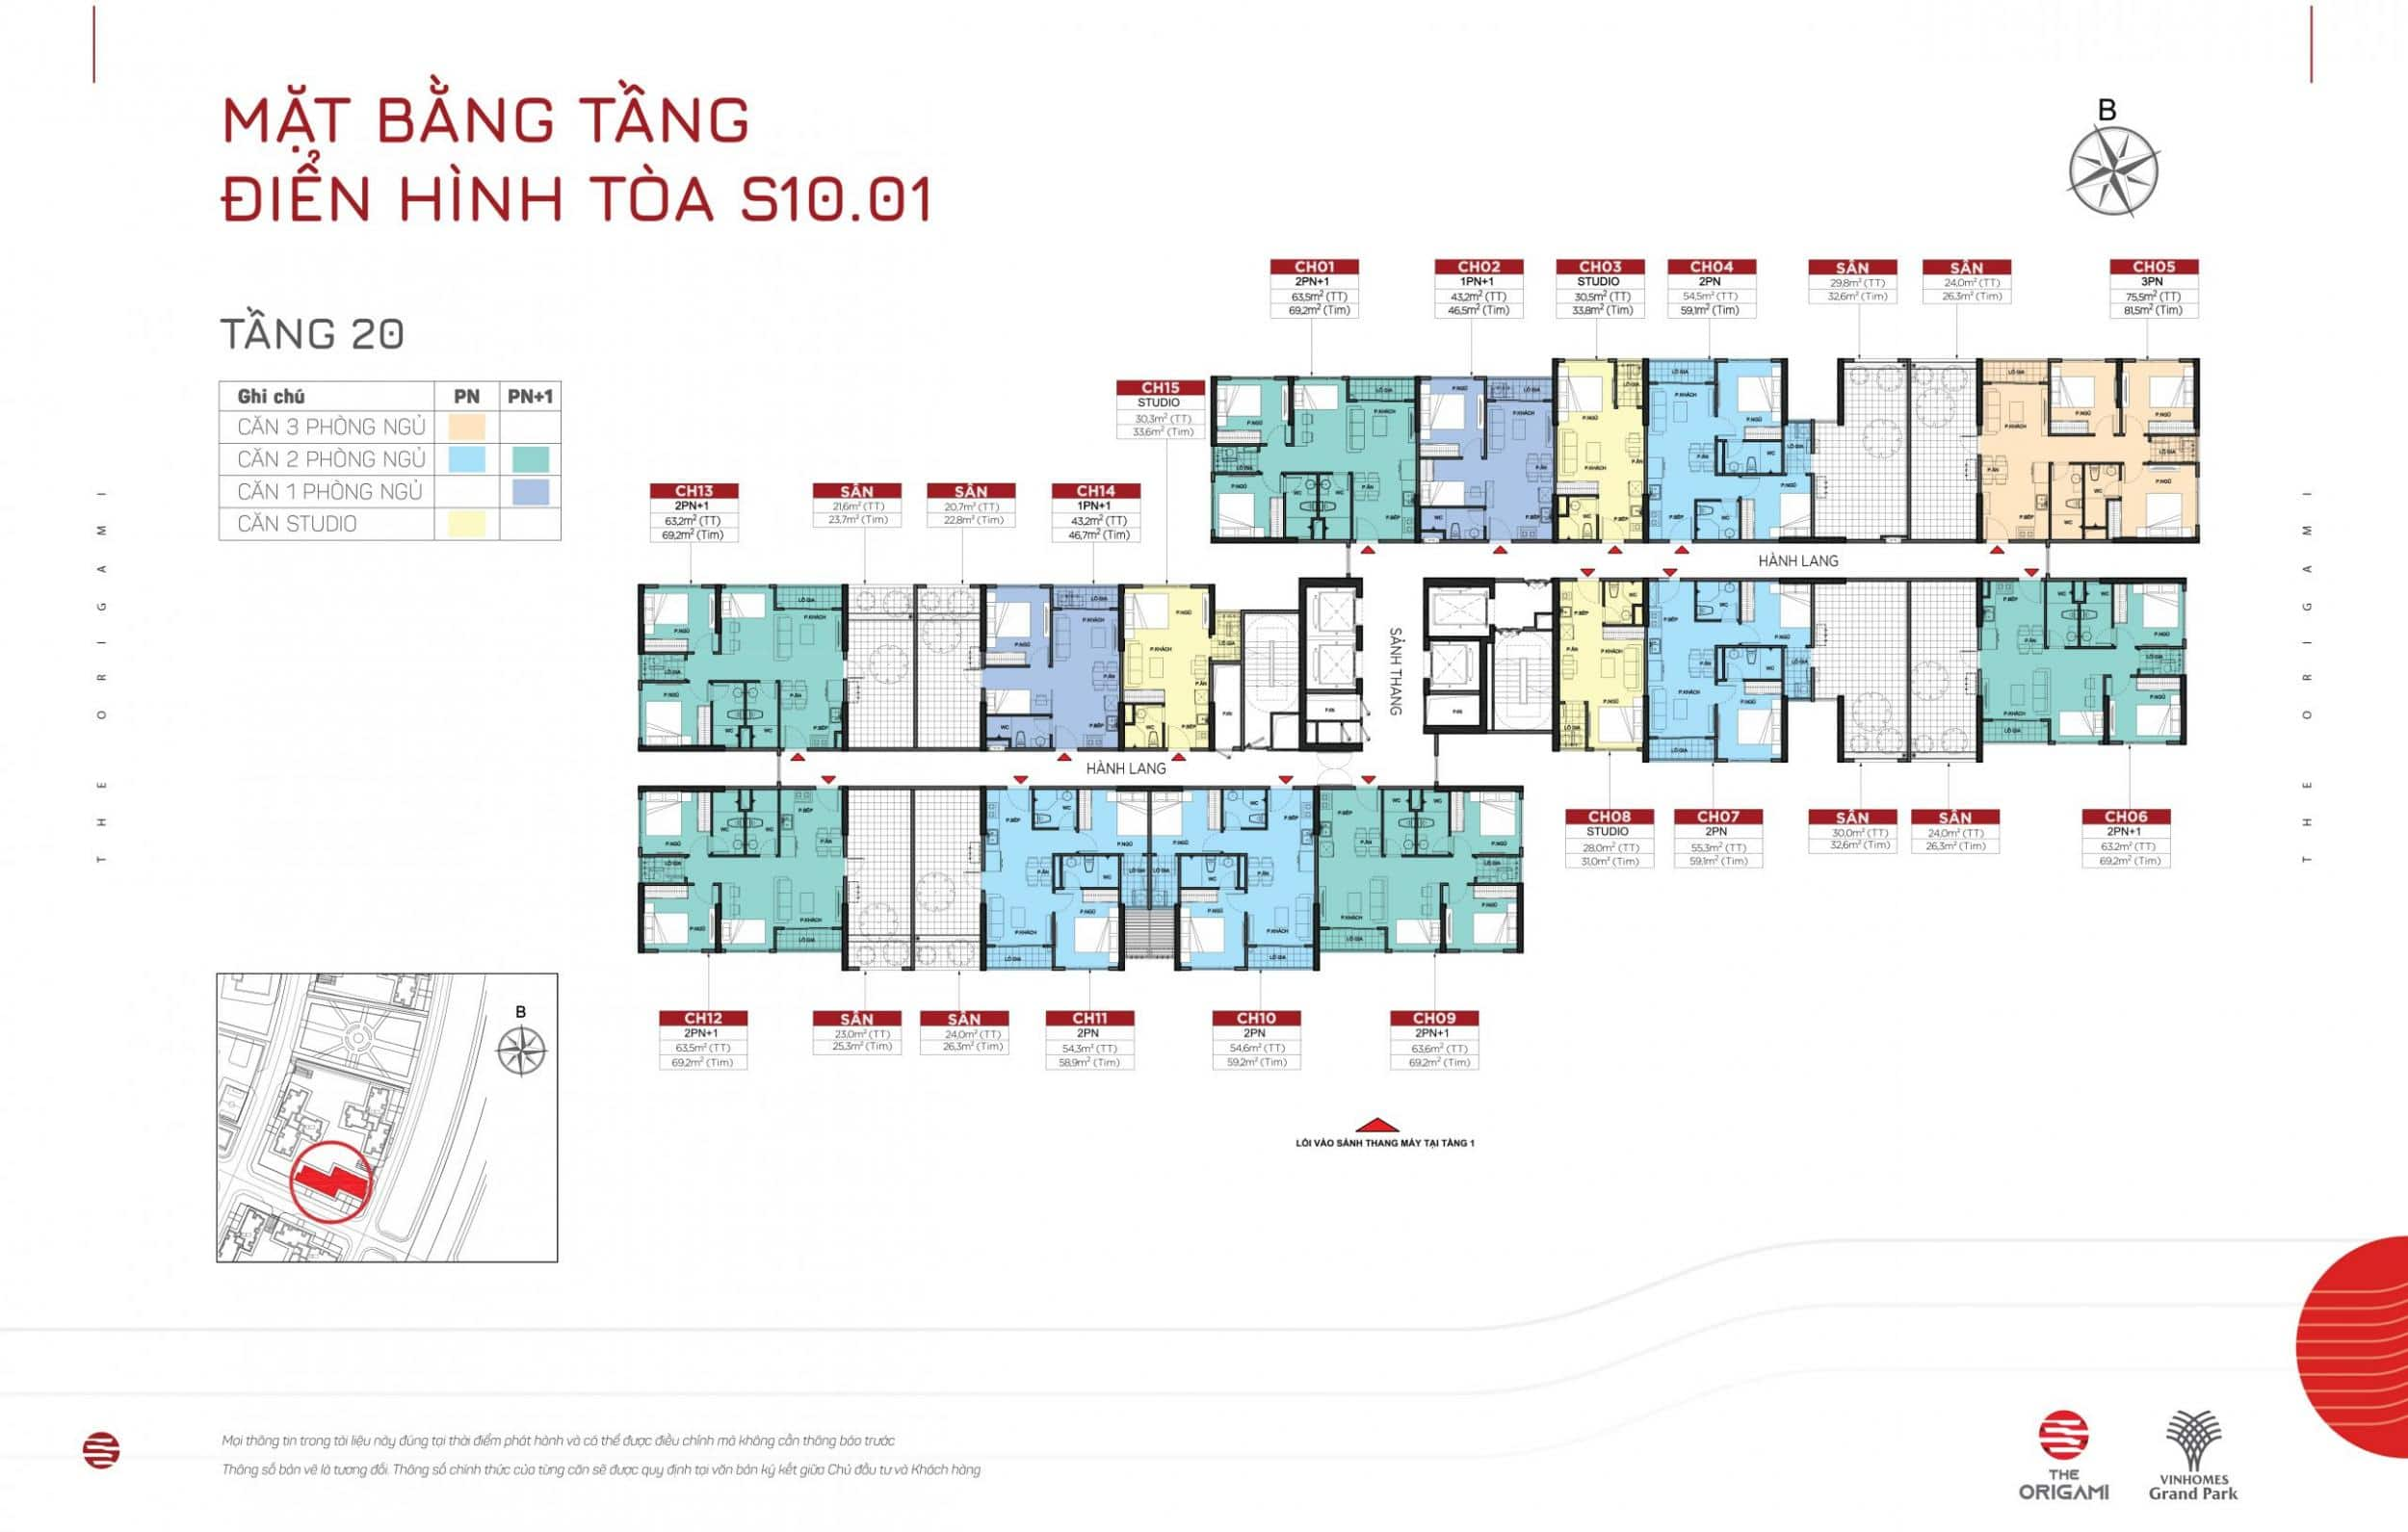 Mặt bằng S10.01 The Origami Vinhomes Grand Park - tầng 20